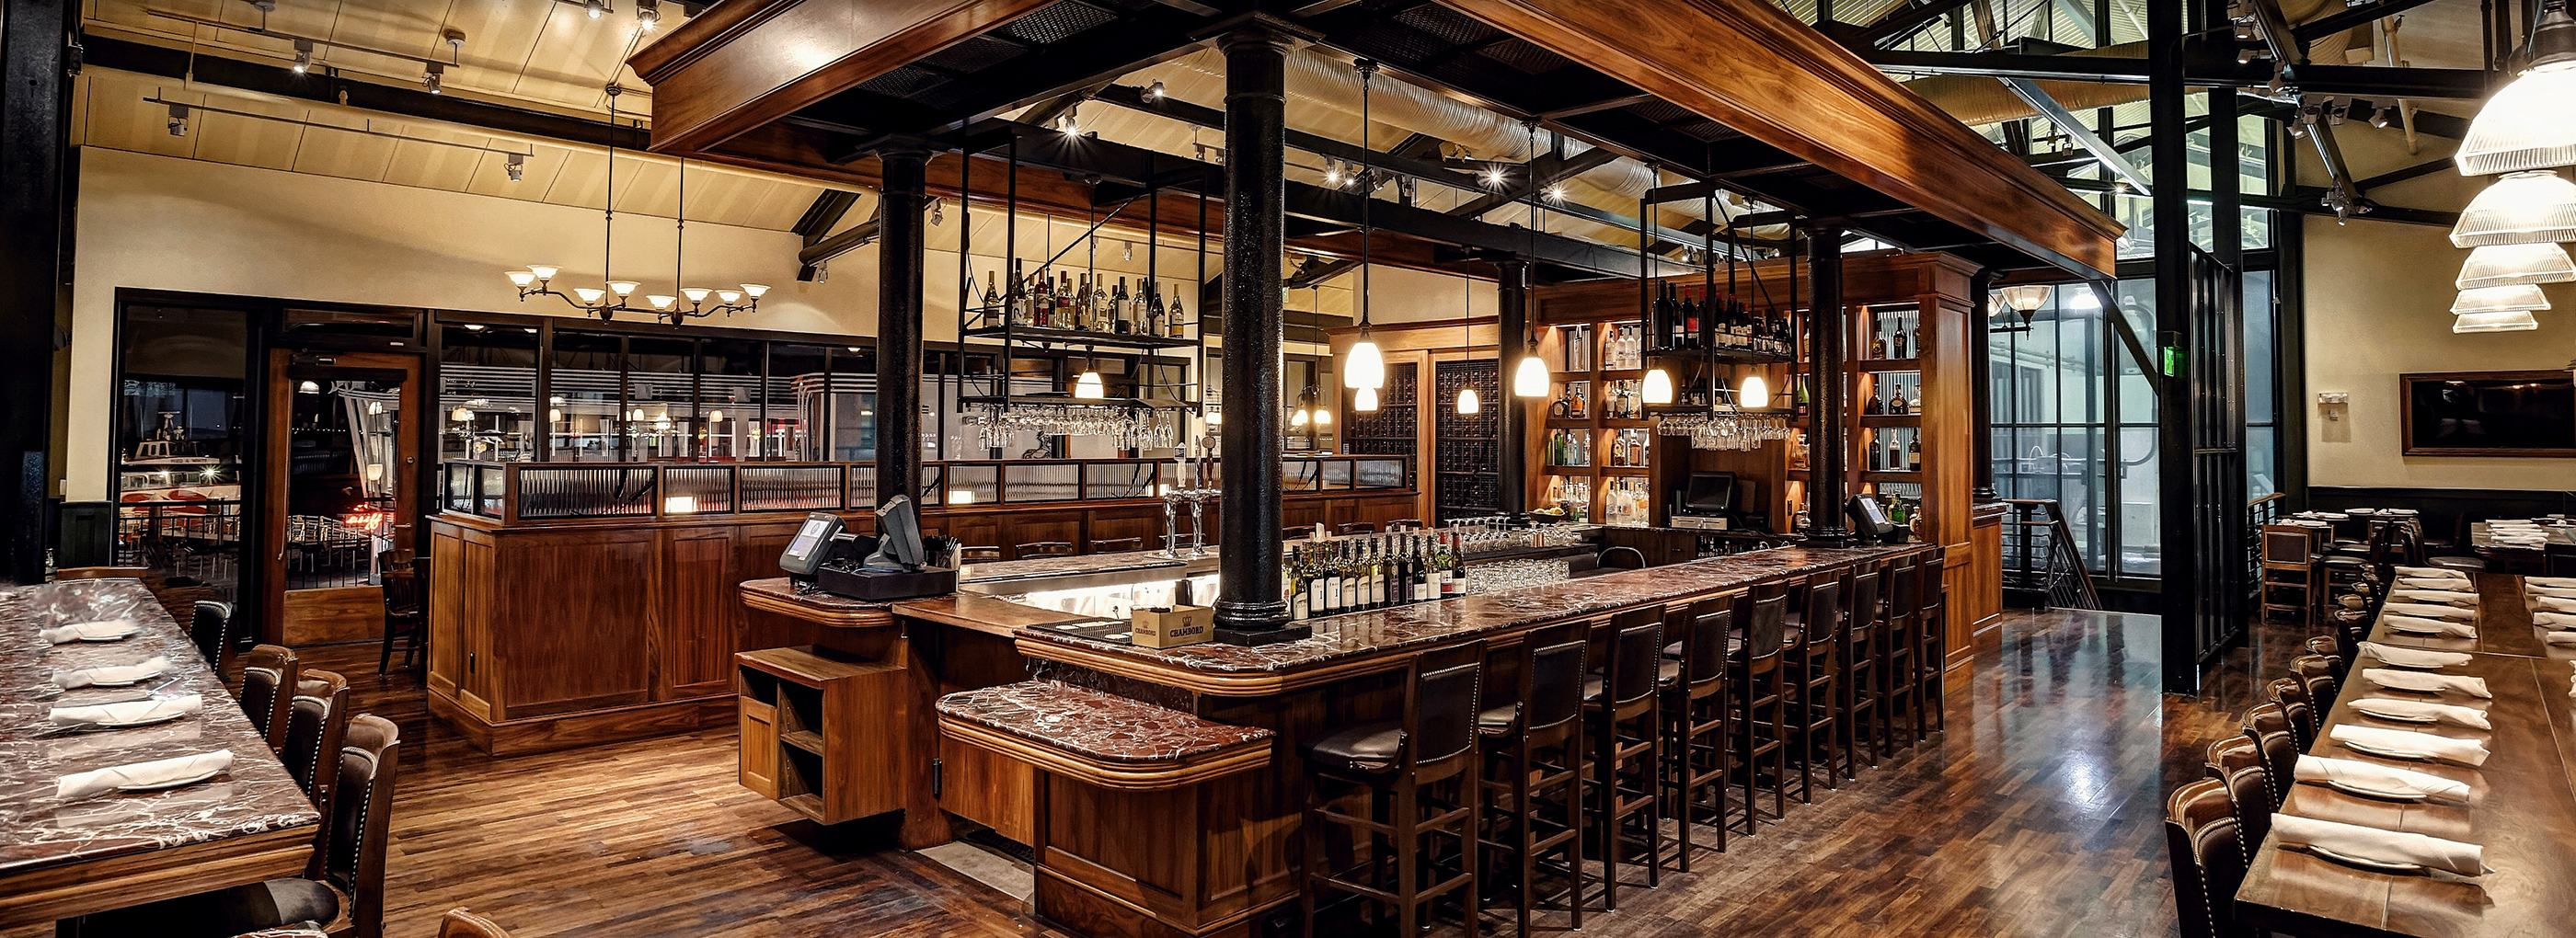 7 restaurants with great acoustic design - kirei usa